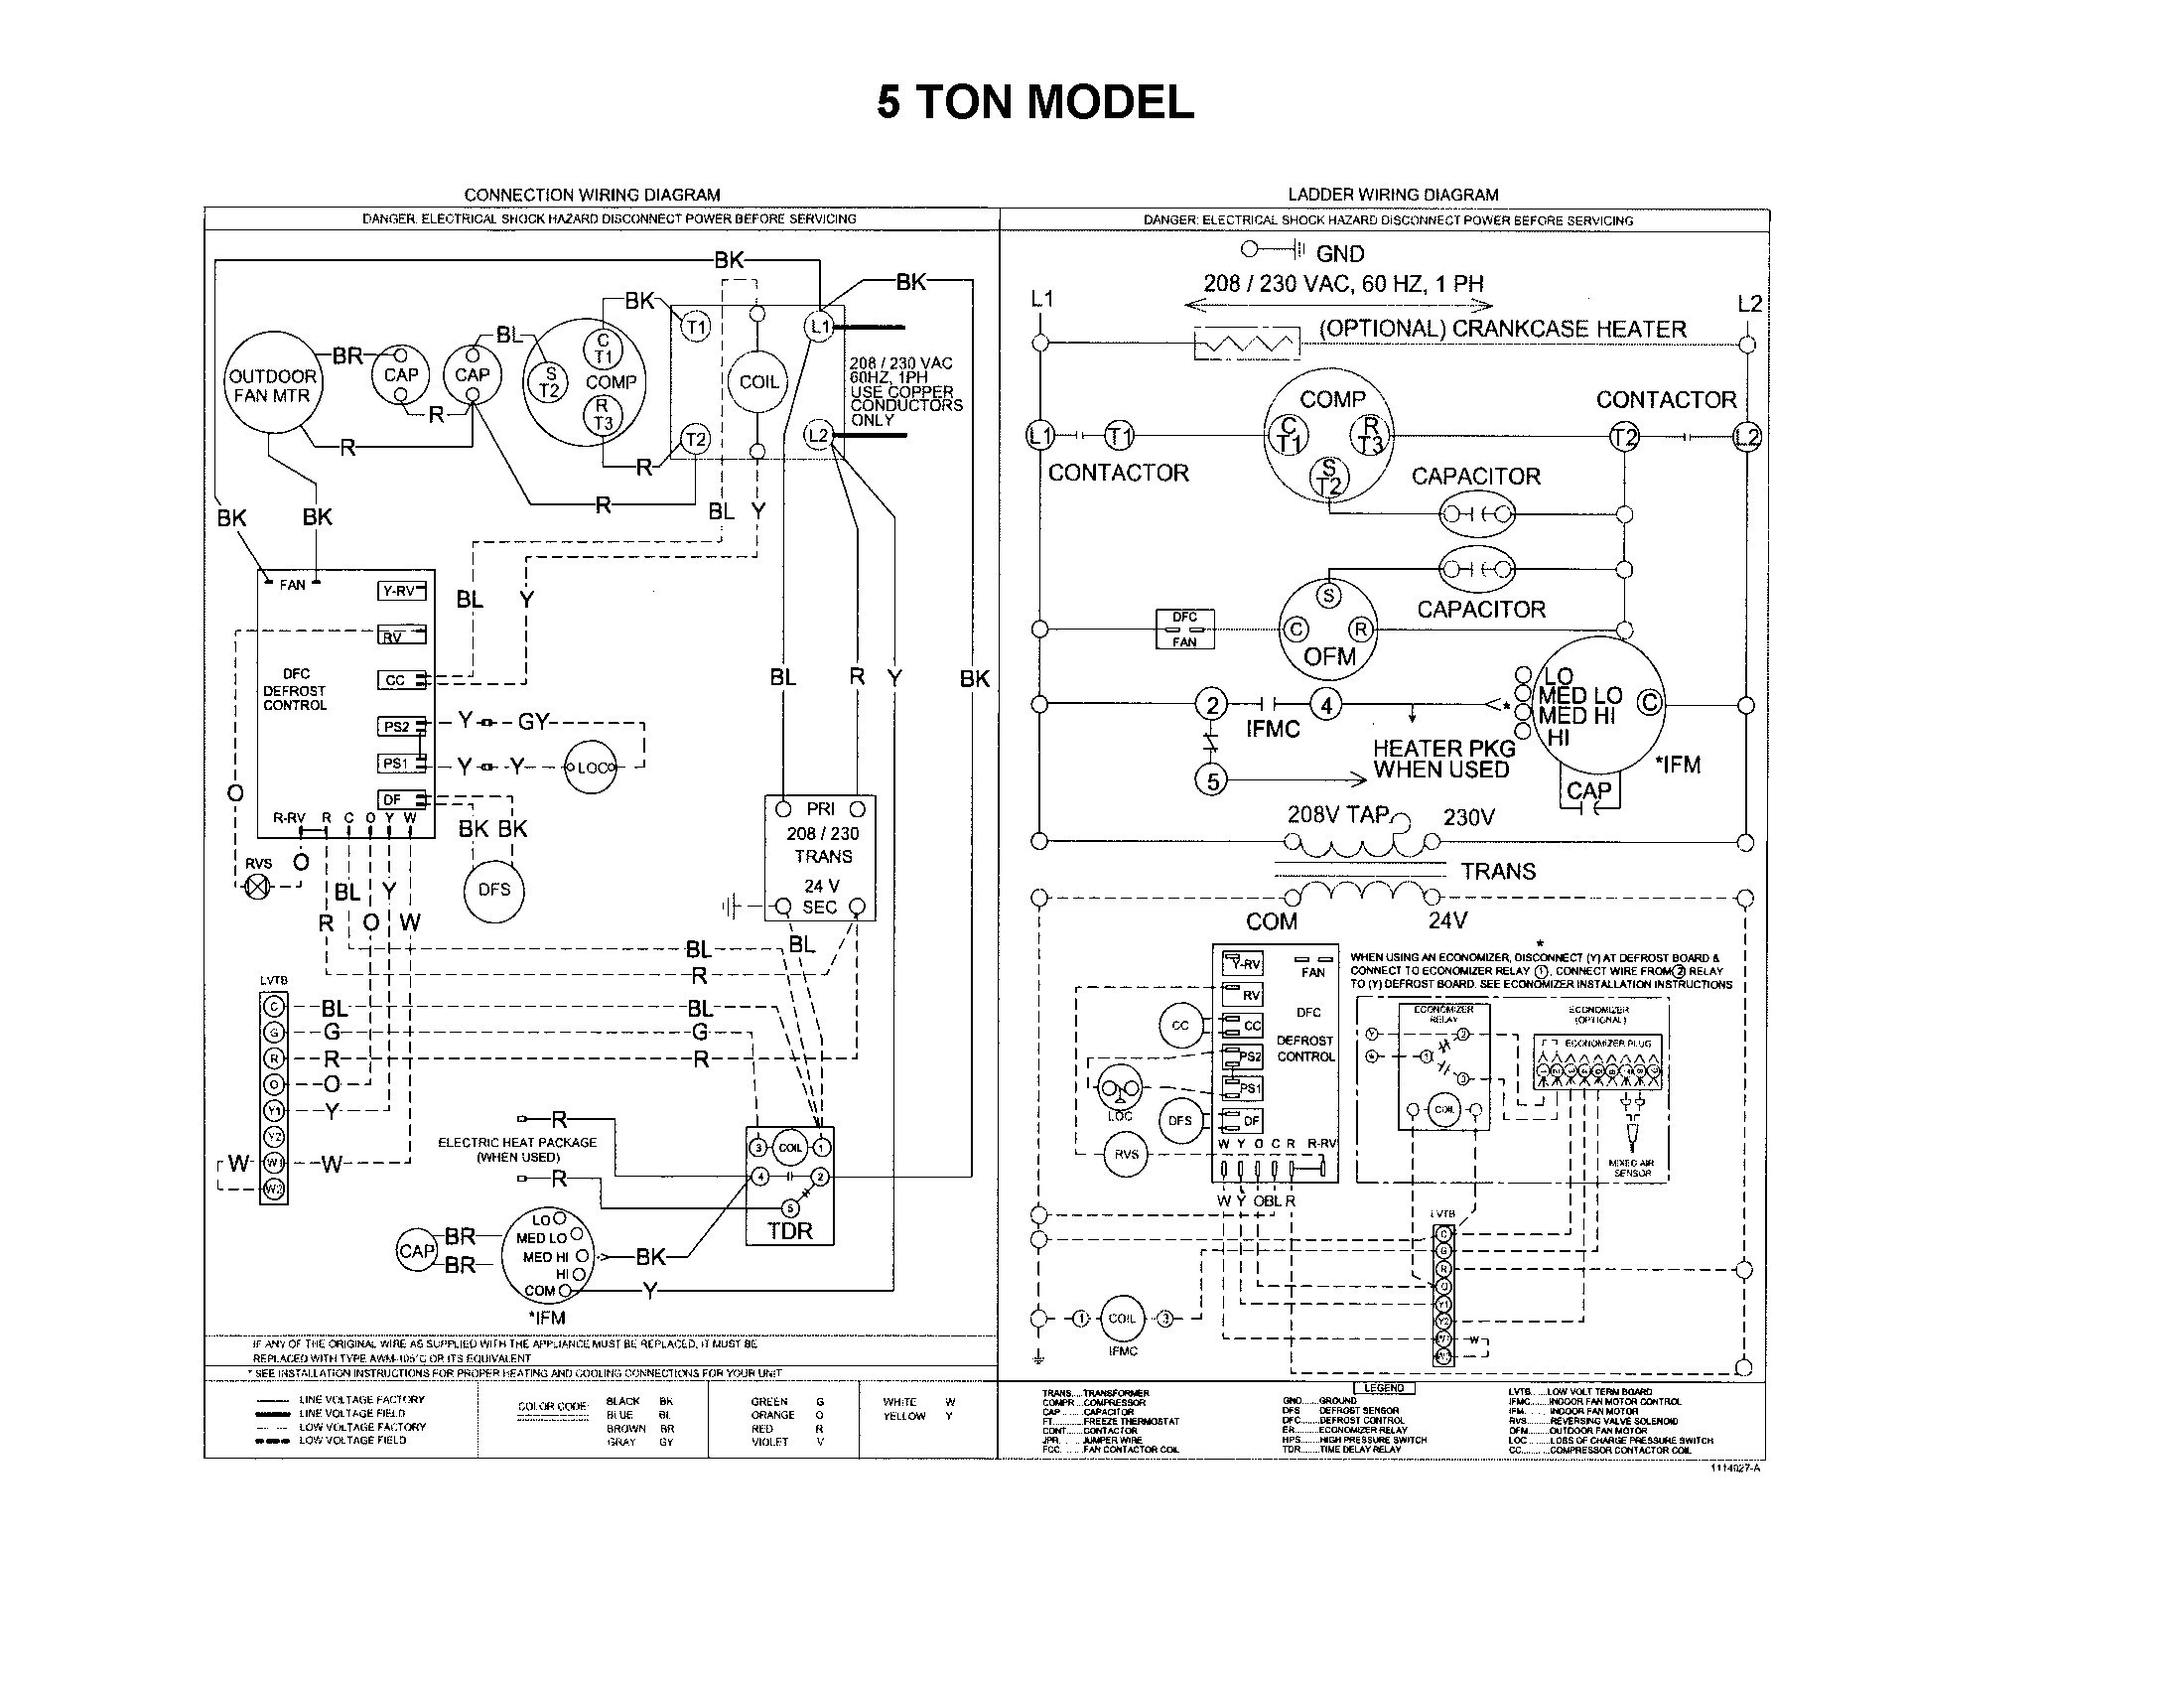 goodman heat pump package unit wiring diagram Download-Goodman Heat Pump Wiring Diagram Elegant Package Unit Incredible 14-b